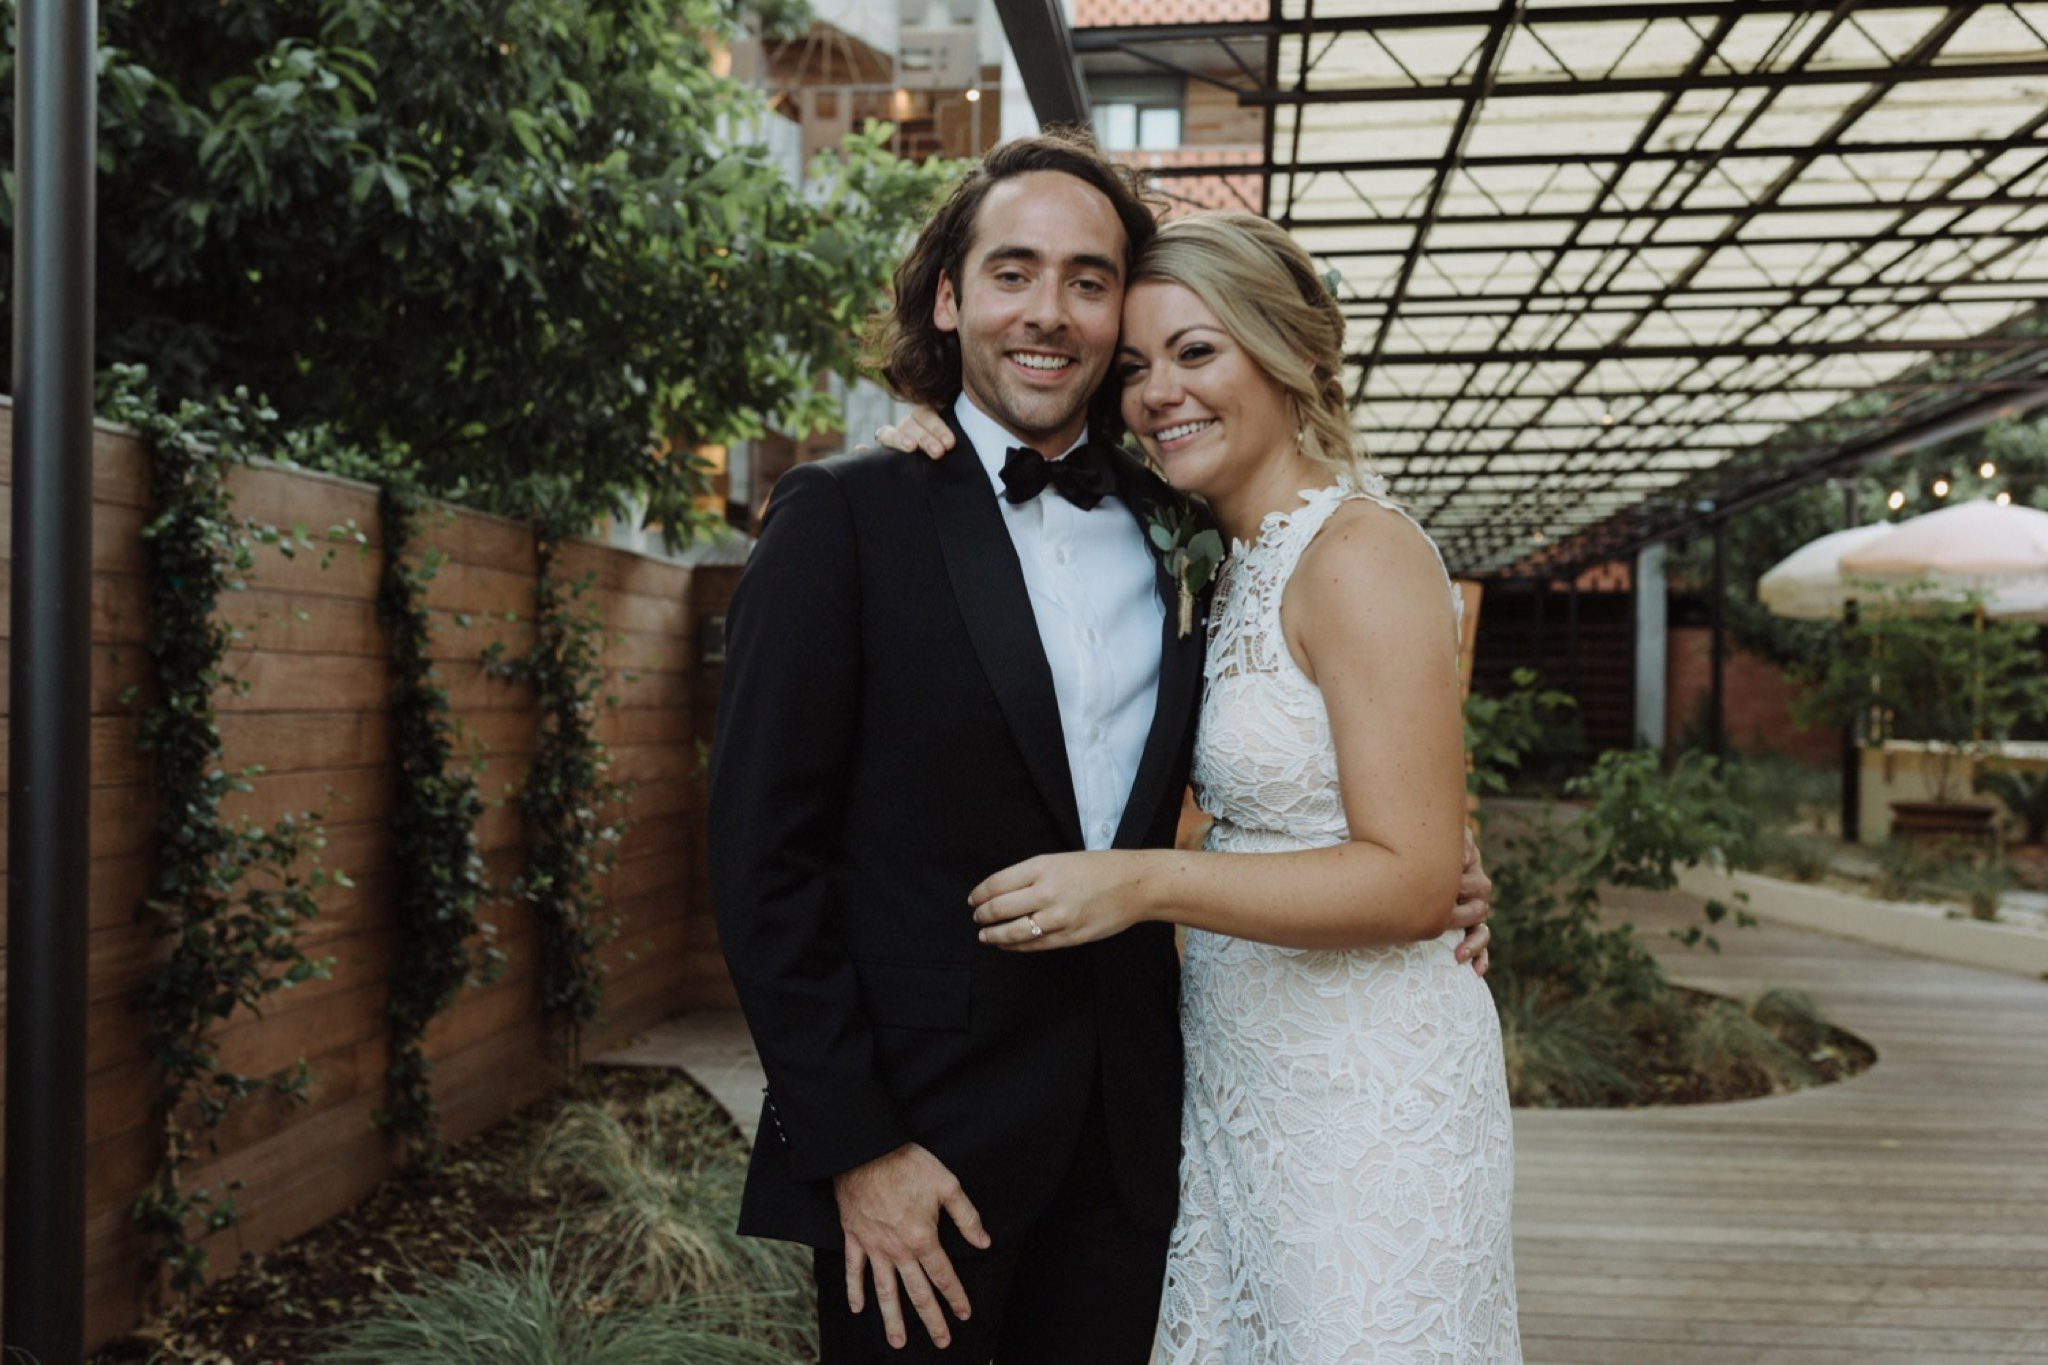 Newly married creative couple embracing in the courtyard after their Carpenter Hotel wedding